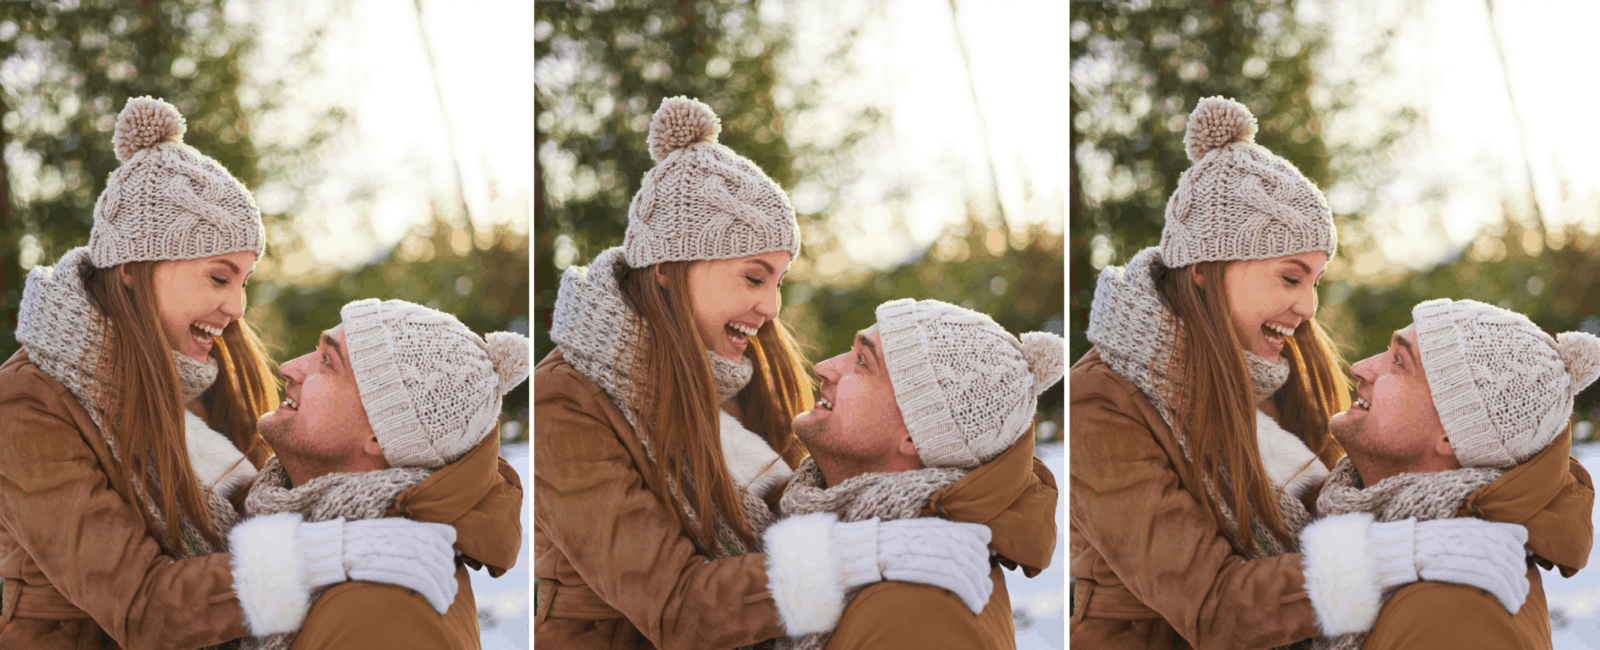 27 Date Ideas You Have to Take Your Boyfriend On This Winter